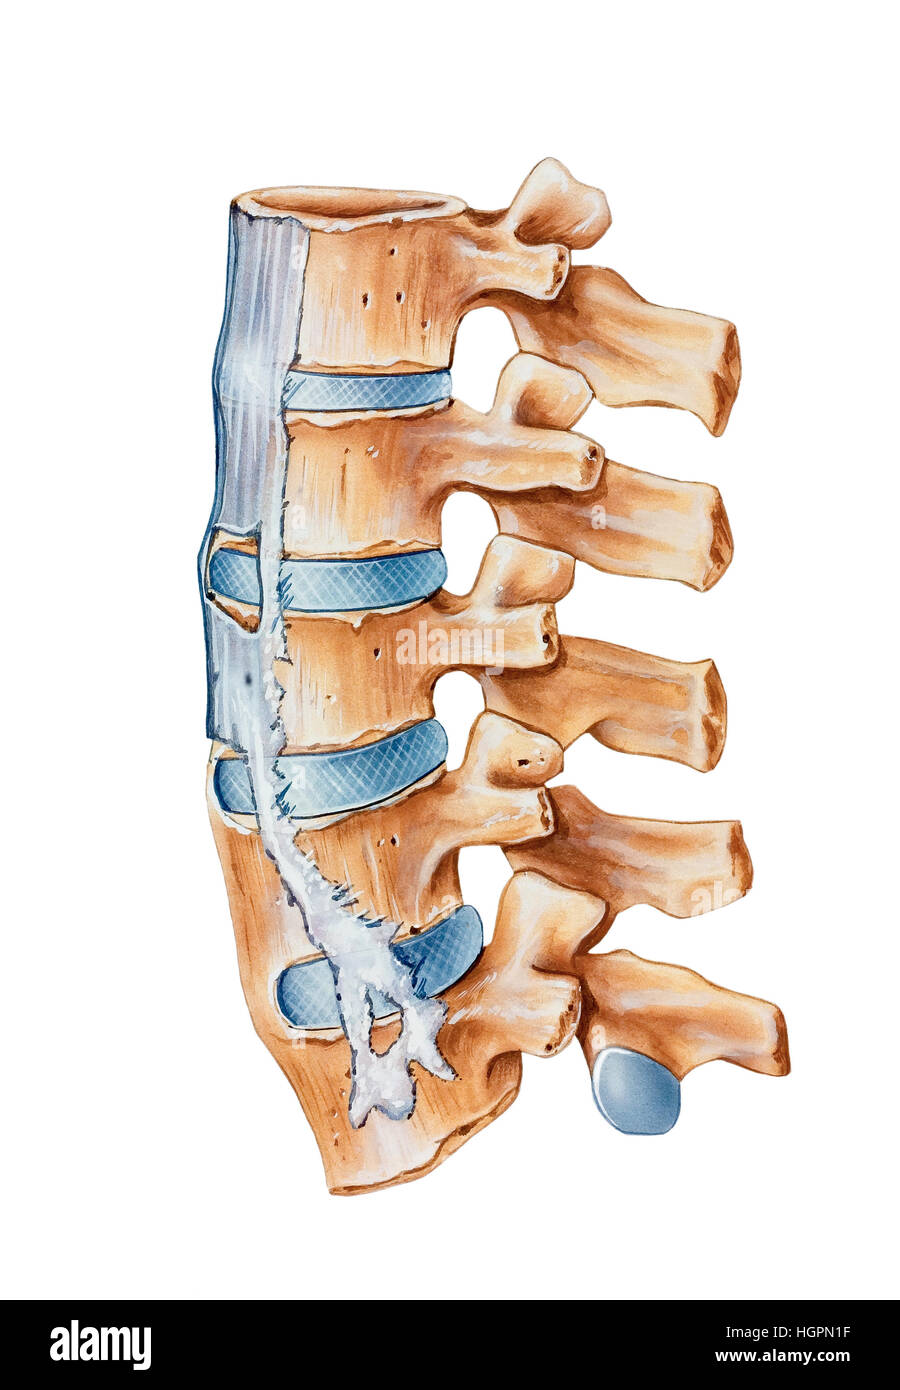 Spine - Ankylosing Spondylitis a condition with the symptoms of lower back pain and stiffness that predominantly - Stock Image